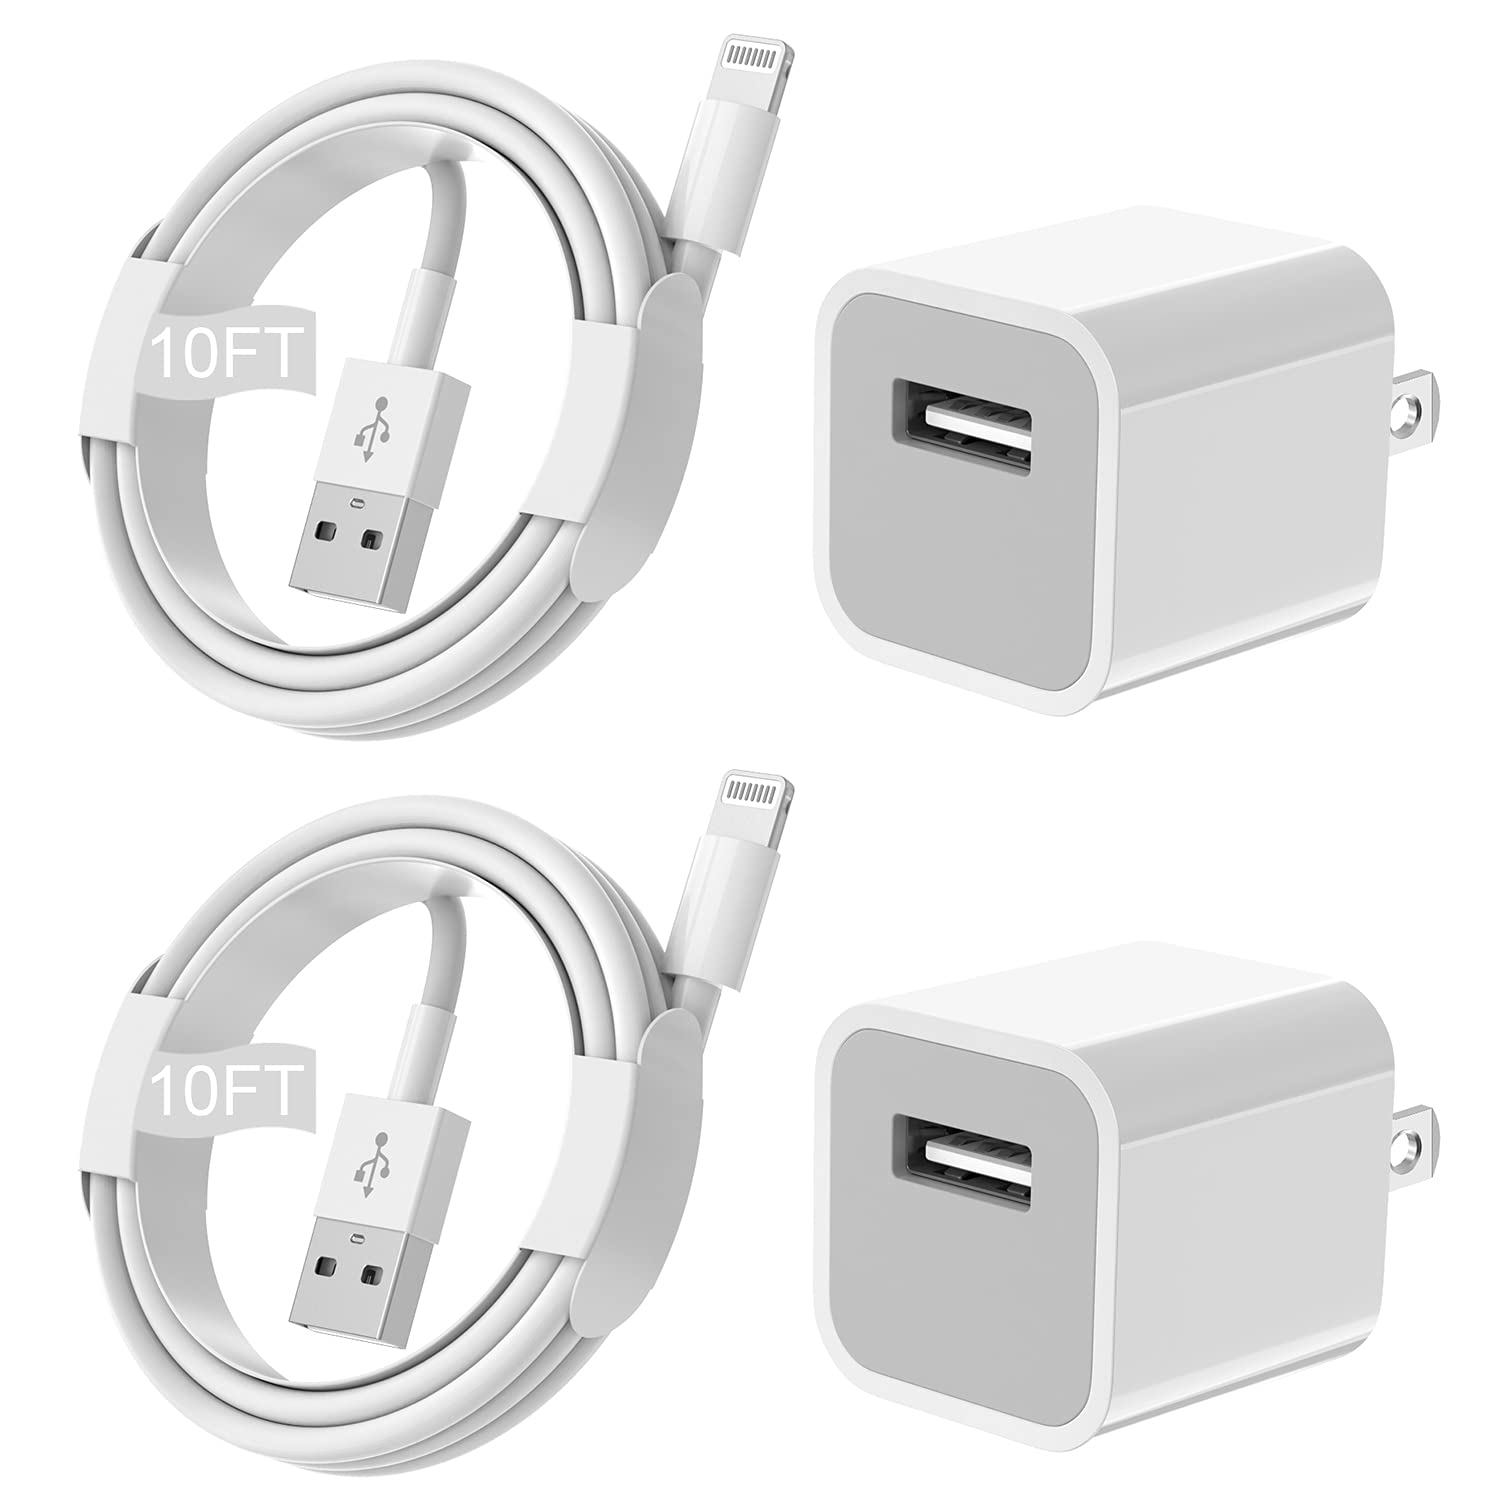 iPhone Charger [Apple MFi Certified] Long 2 pack 10FT Lightning Cable Cube iPhone Charging Transfer Cord with USB Plug Wall Charger Block Travel Adapter for iPhone 12/11/11 Pro Max/SE 2020/Xs Max/XR/X